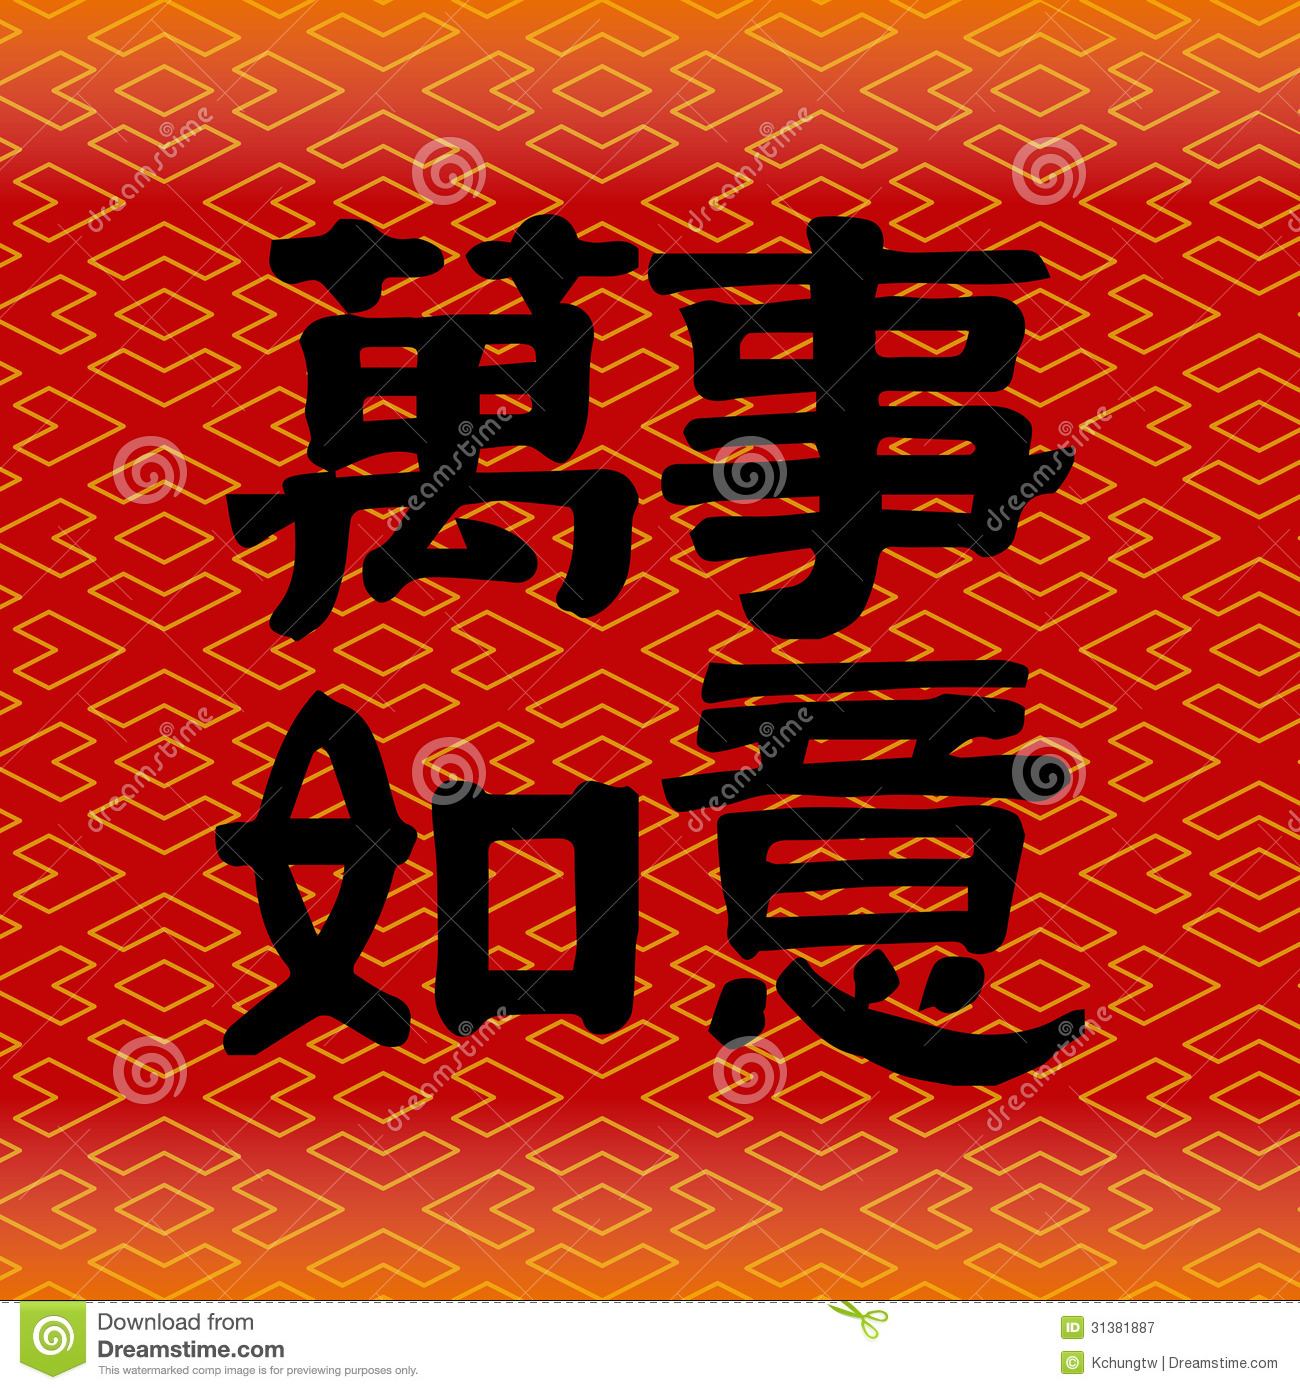 Chinese Good Luck Symbols Royalty Free Stock Photography ...